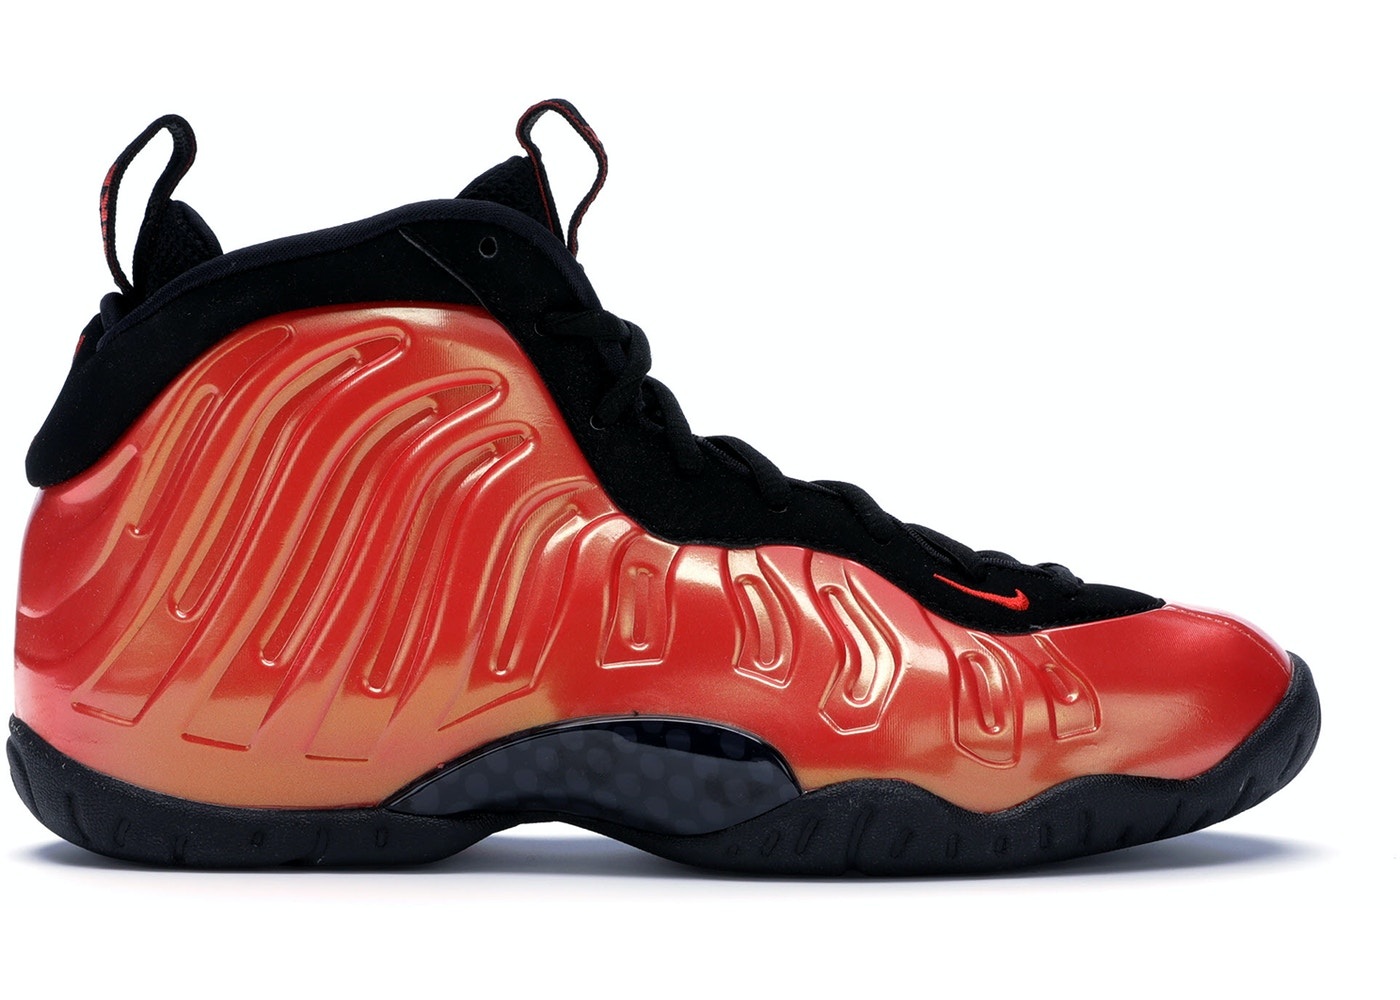 info for 7a9e9 05dac Air Foamposite One Habanero Red (GS)